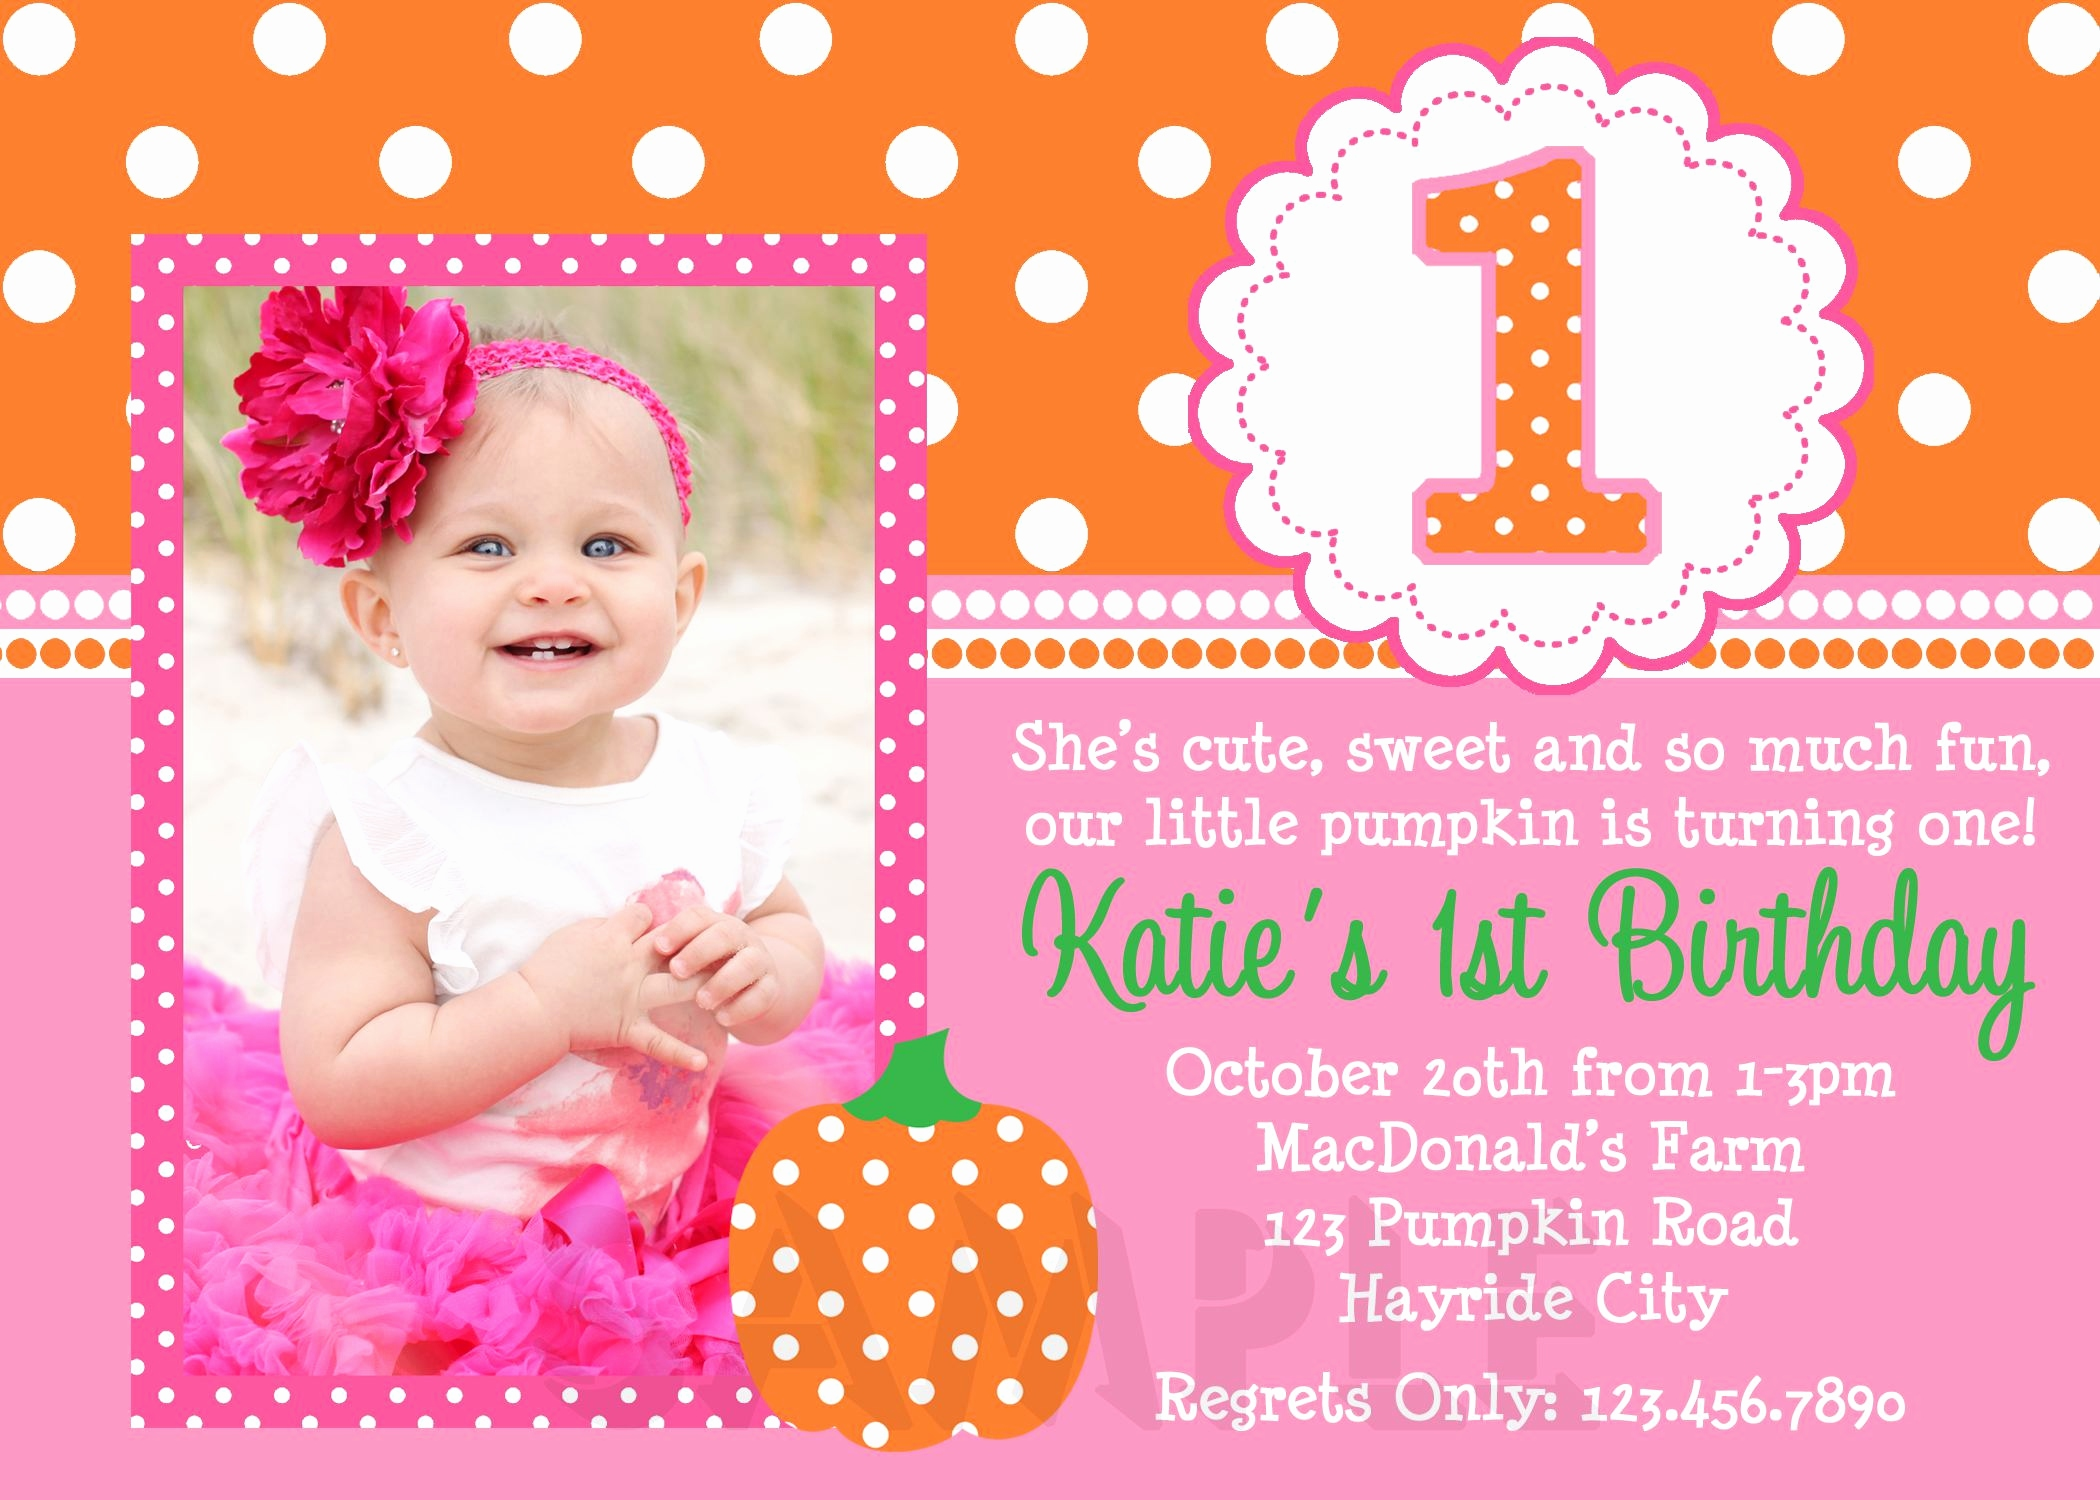 first birthday invitation cards india ; 1st-birthday-invitation-card-sample-india-beautiful-birthday-card-invitations-birthday-invitation-cards-for-a-1-year-of-1st-birthday-invitation-card-sample-india